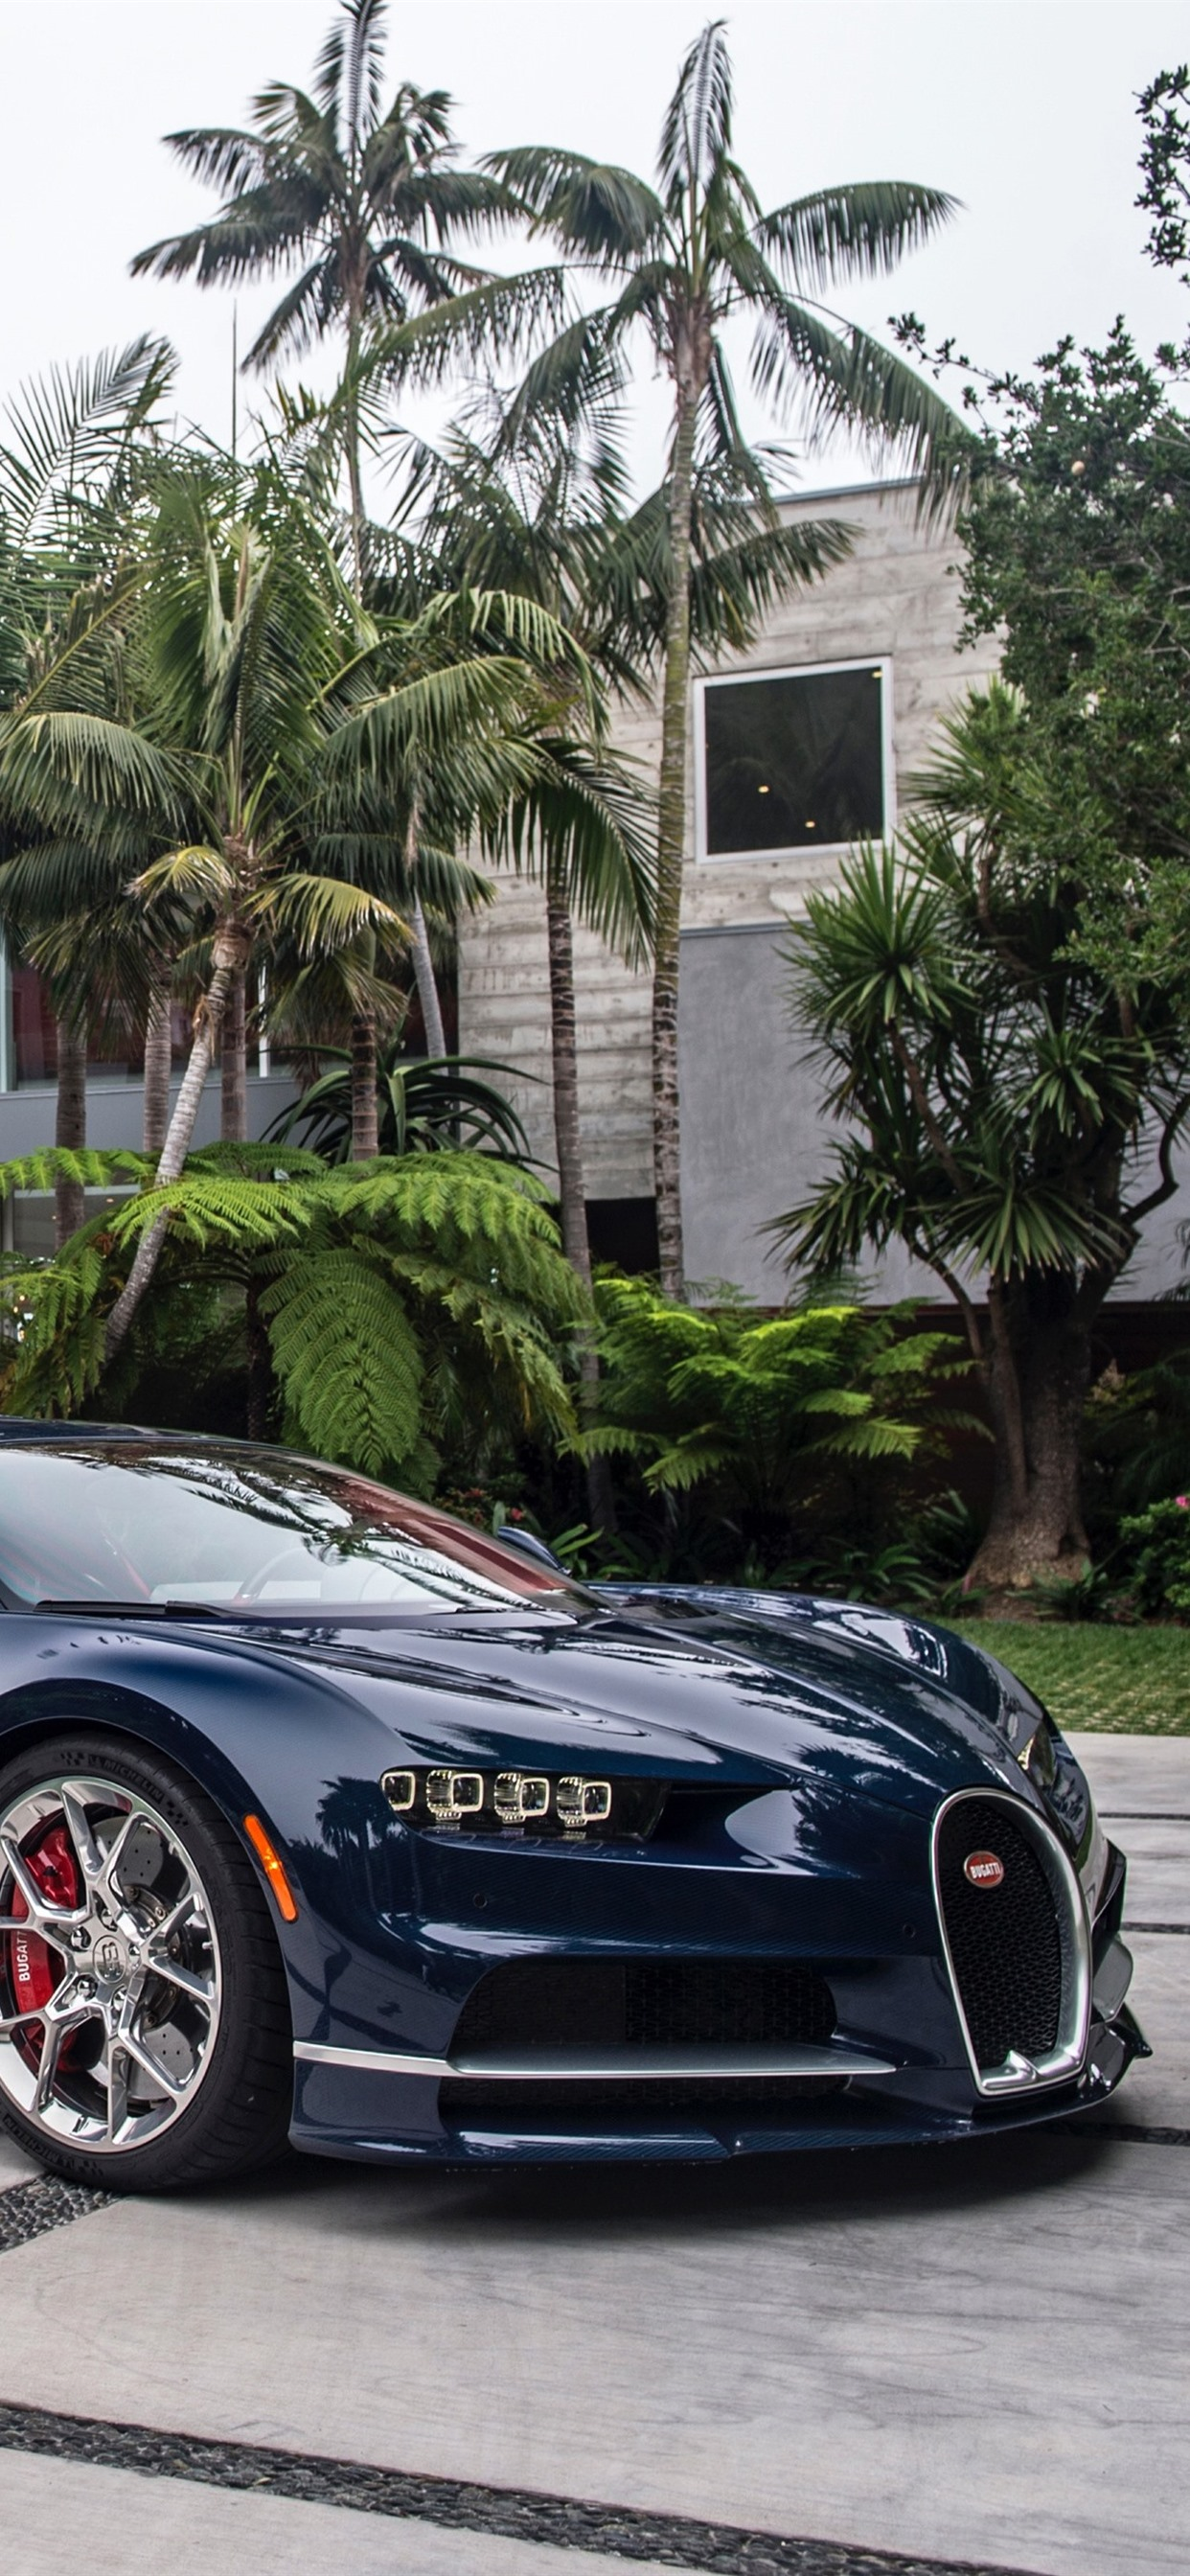 Iphone Wallpaper Bugatti Blue Supercar Palm Trees Bugatti Chiron Wallpaper 4k 2570483 Hd Wallpaper Backgrounds Download